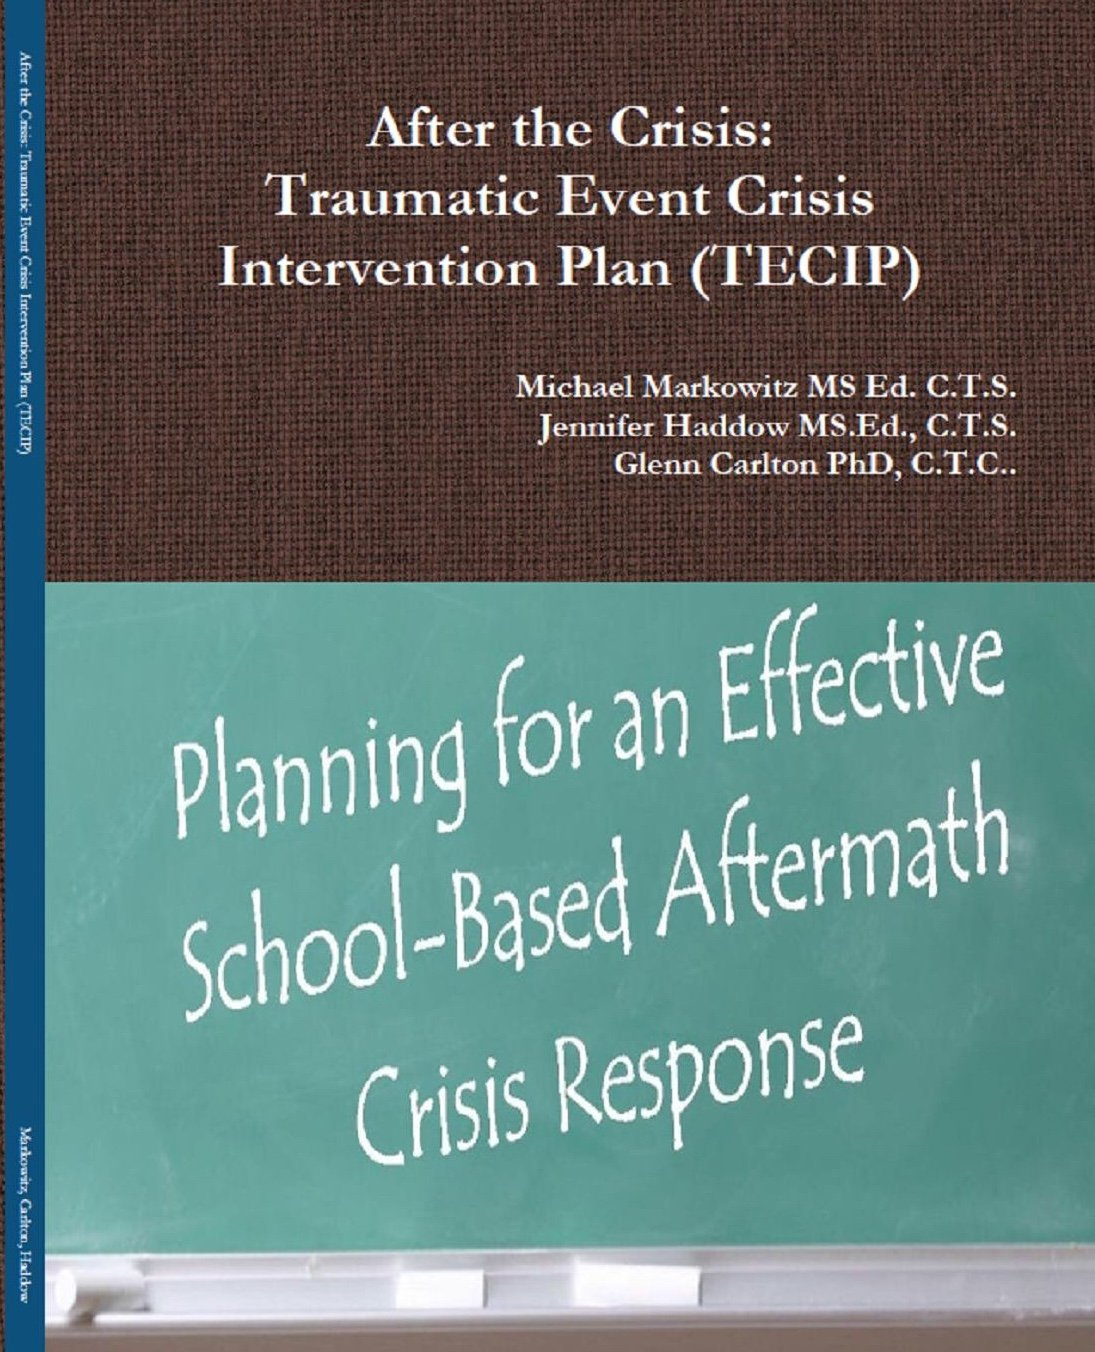 After the Crisis: Traumatic Event Crisis Intervention Plan (TECIP) (Road Maps for a Proactive Building Response) PDF